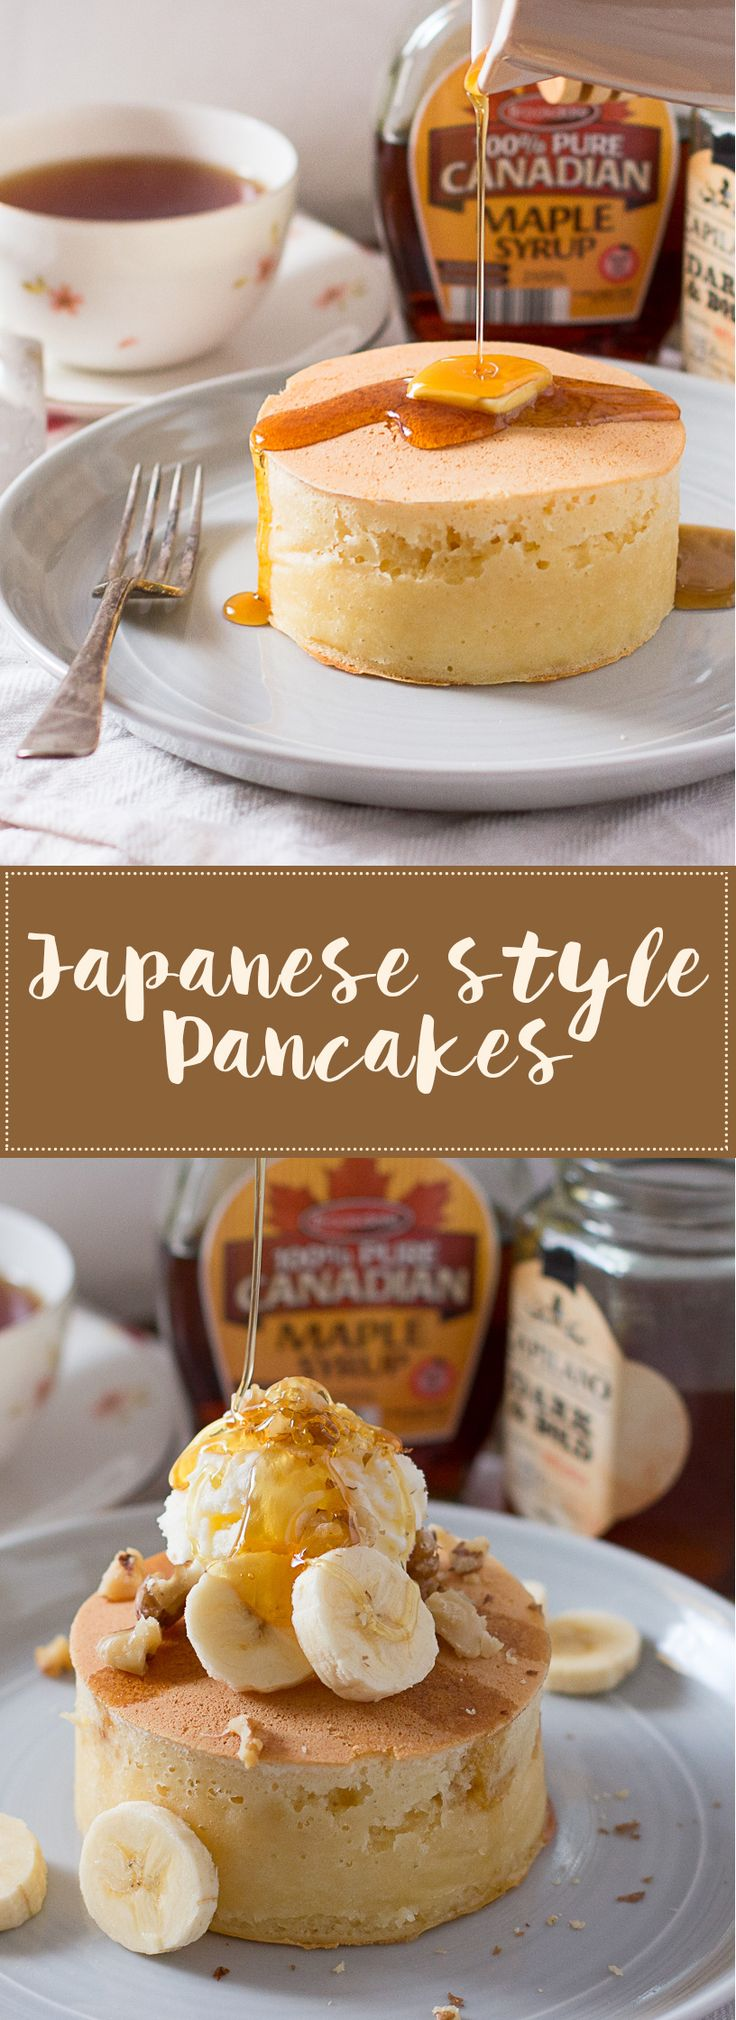 These Japanese style pancakes are extra thick, soft, moist, and fluffy, which also makes them extra delicious! No special skills or equipment are needed!